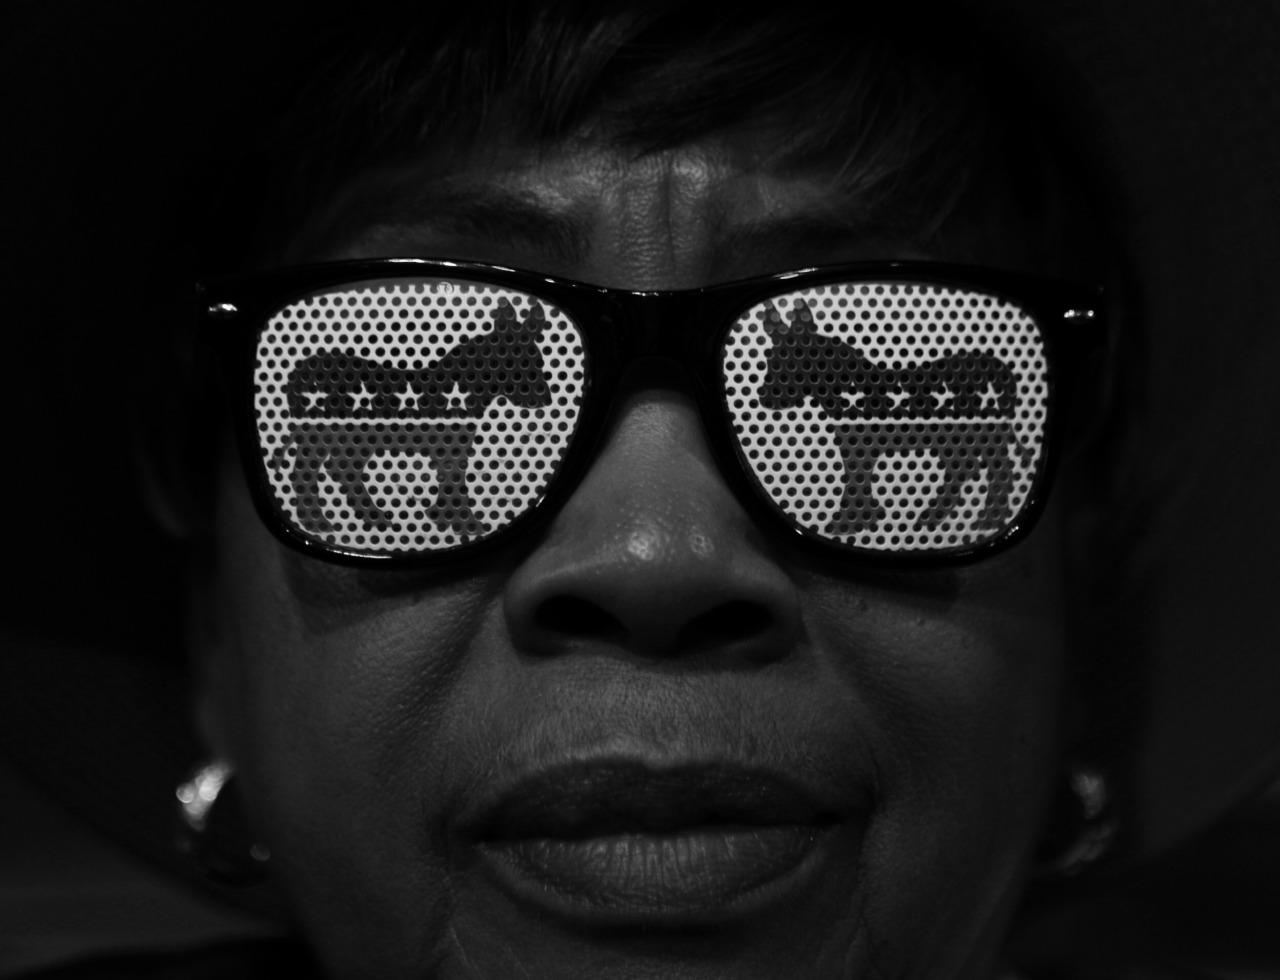 <p>Louisiana delegate Sylvia Crier shows her support for her party and for Hillary Clinton during the Democratic National Convention in Philadelphia, PA on July 28, 2016. (Photo: Khue Bui for Yahoo News)</p>